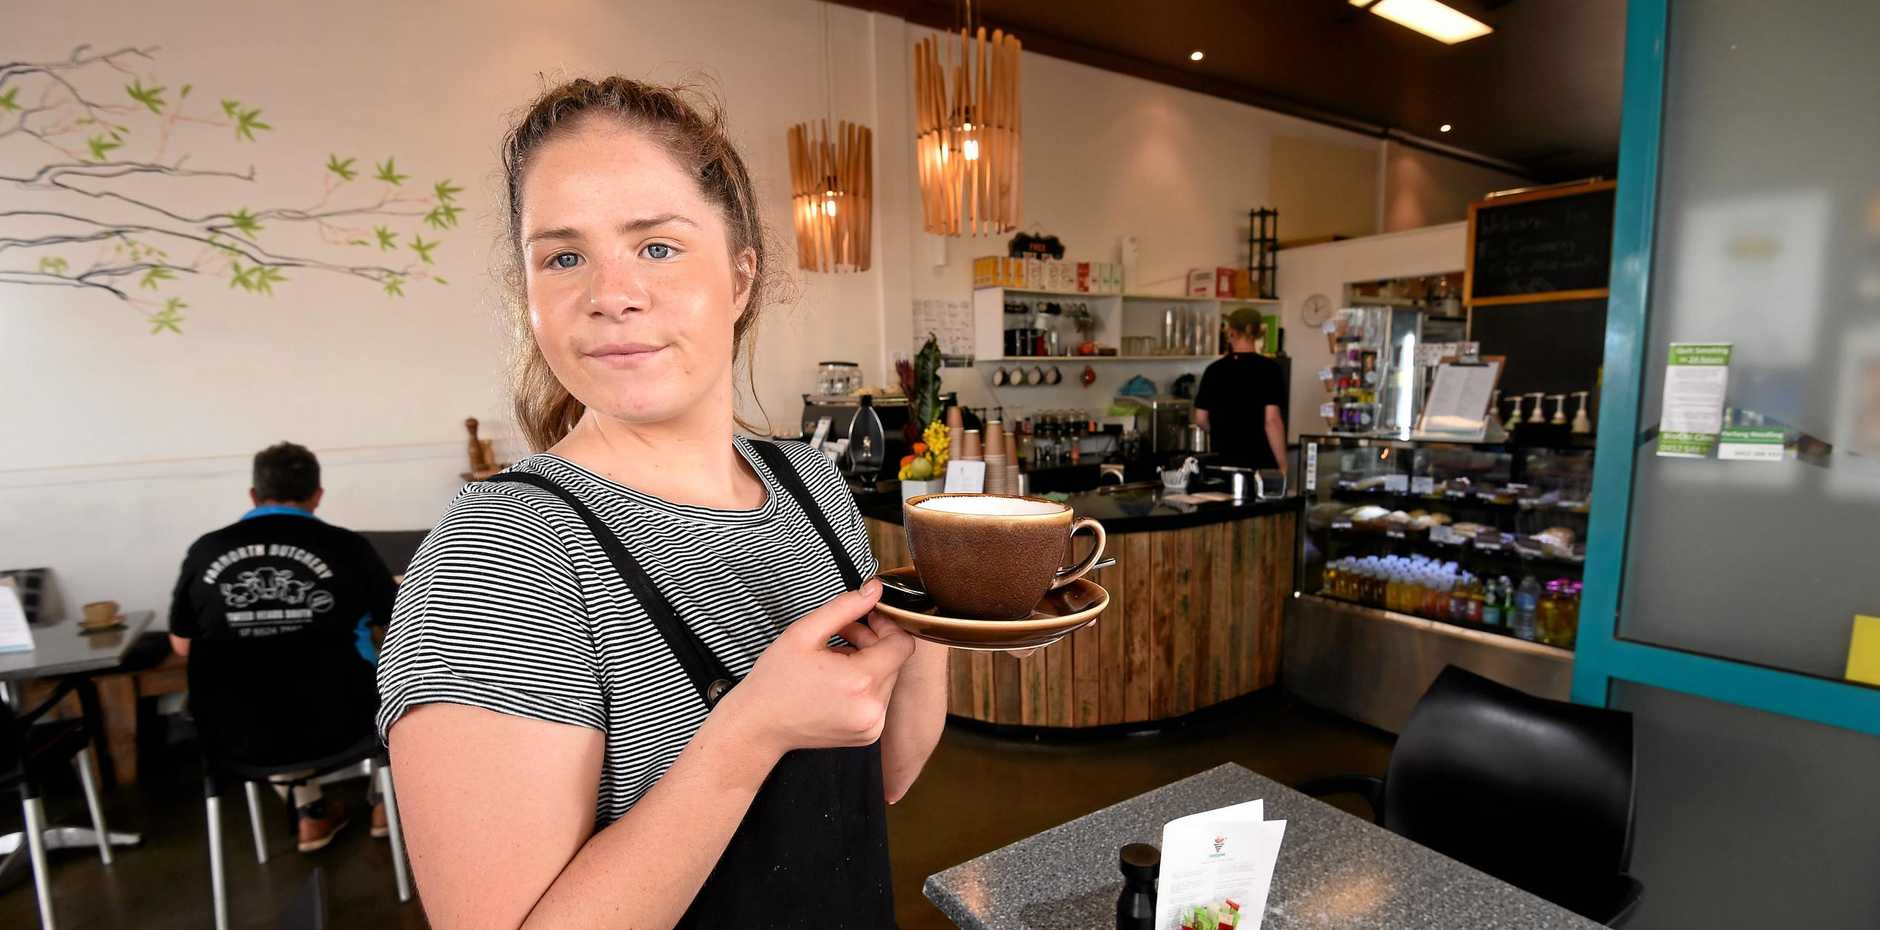 Alstonville girl Jakirra Graham bought her own cafe and is the new owner and manager of The Crossing in Alstonville, formerly knows as Savannah Coffee Lounge.